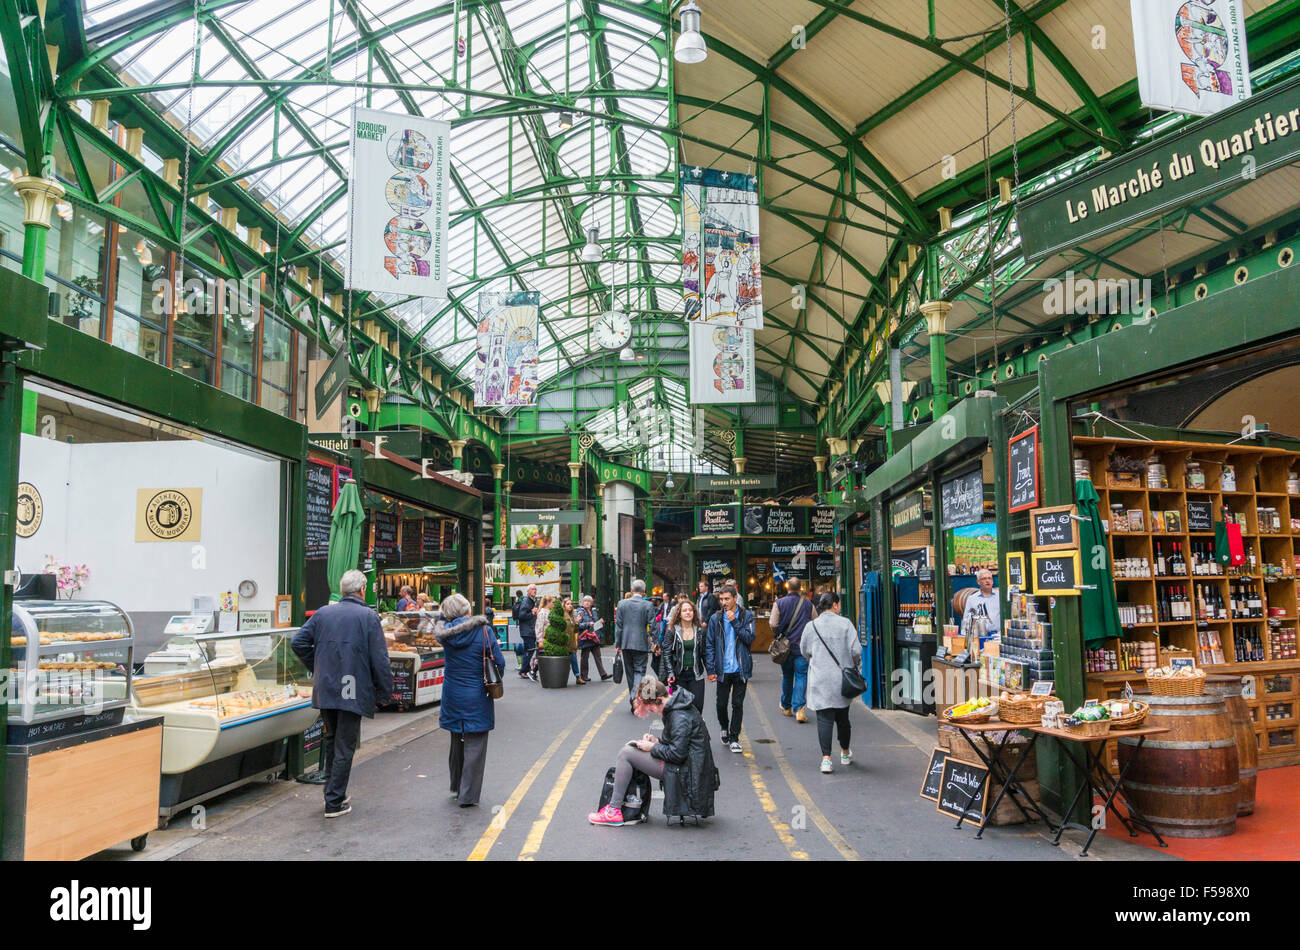 stalls at Borough market borough high street London England UK GB EU Europe - Stock Image